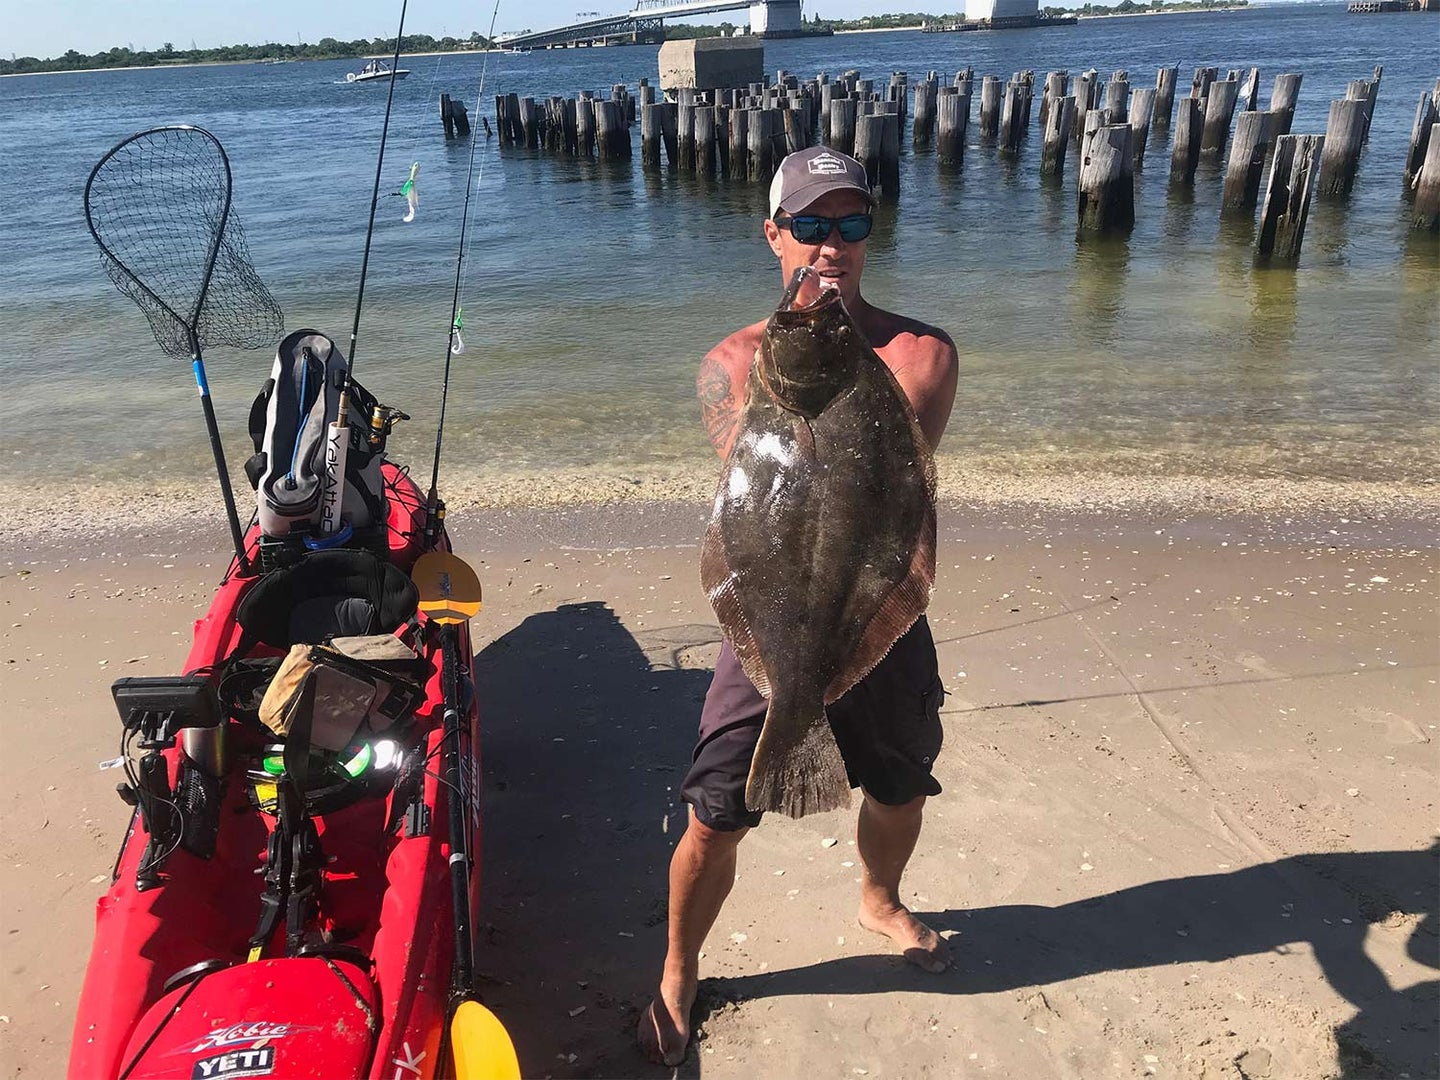 Three Things To Look For In a Fishing Kayak